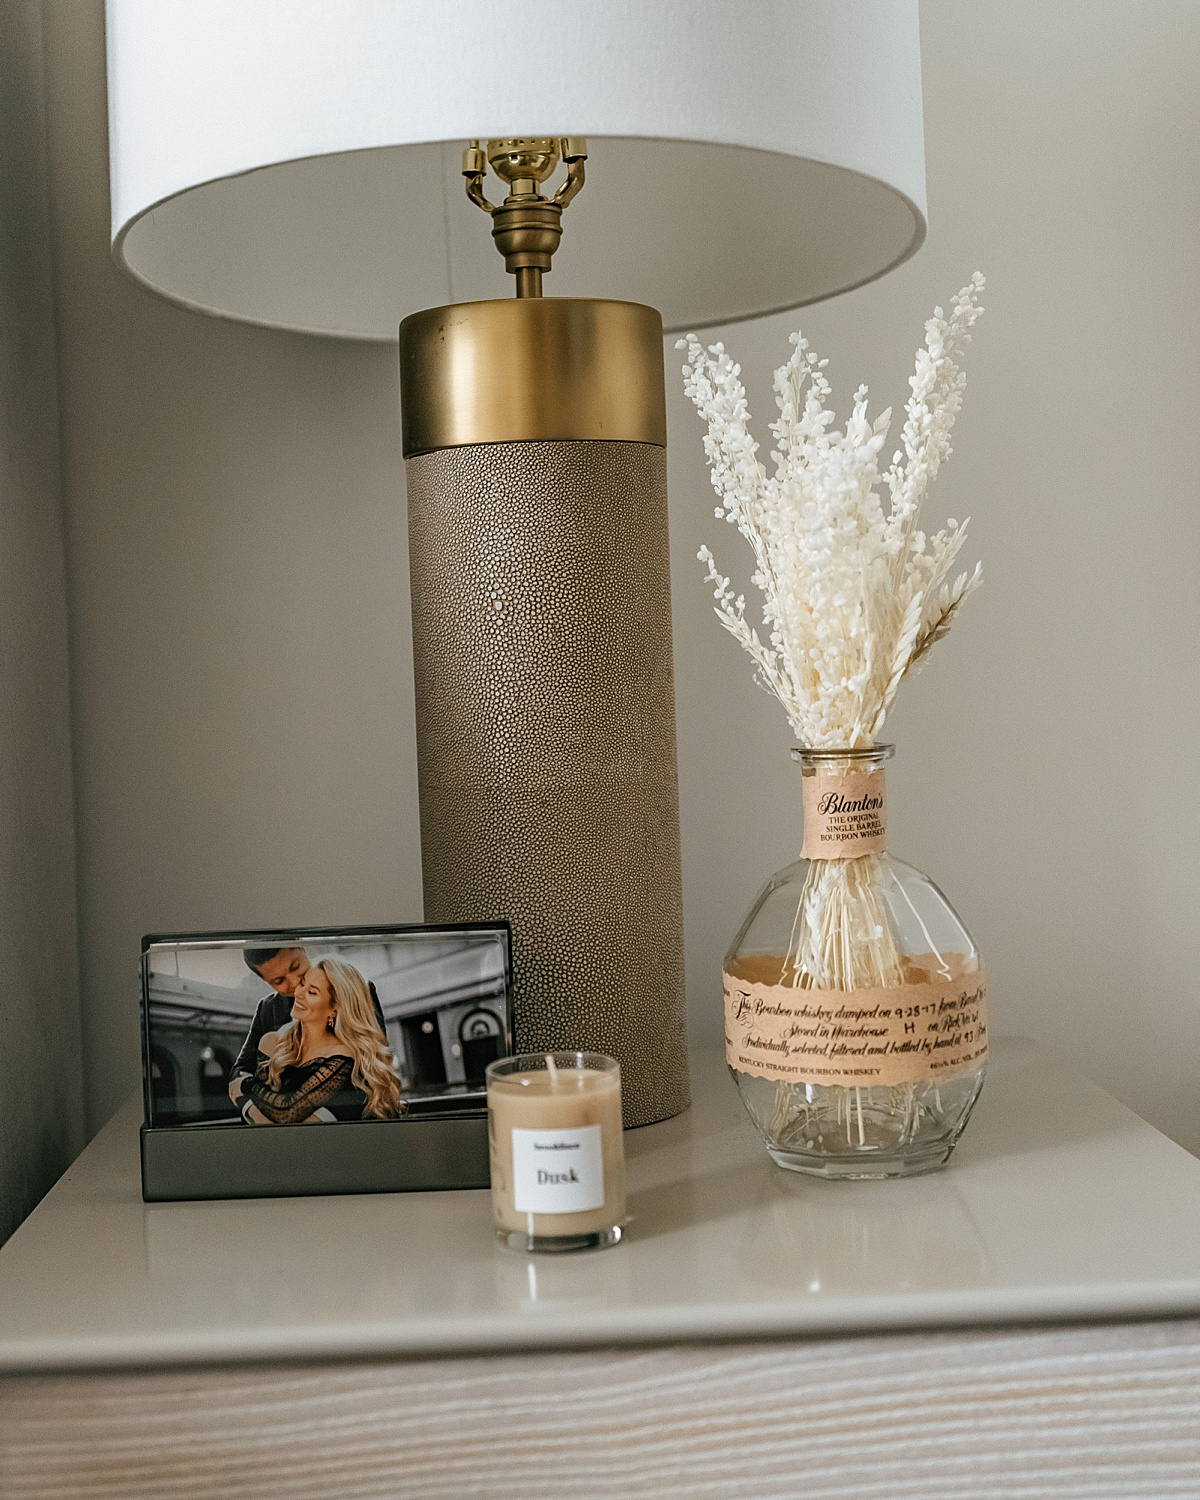 shagreen lamp, nyc apartment, home decor tips, affordable home decor, olivia rink bedroom, olivia rink apartment, olivia rink bedroom, affordable decorating, new york life, new york apartment, nyc living, west elm, kathy kuo home, home decor, bedroom decor, blanton's